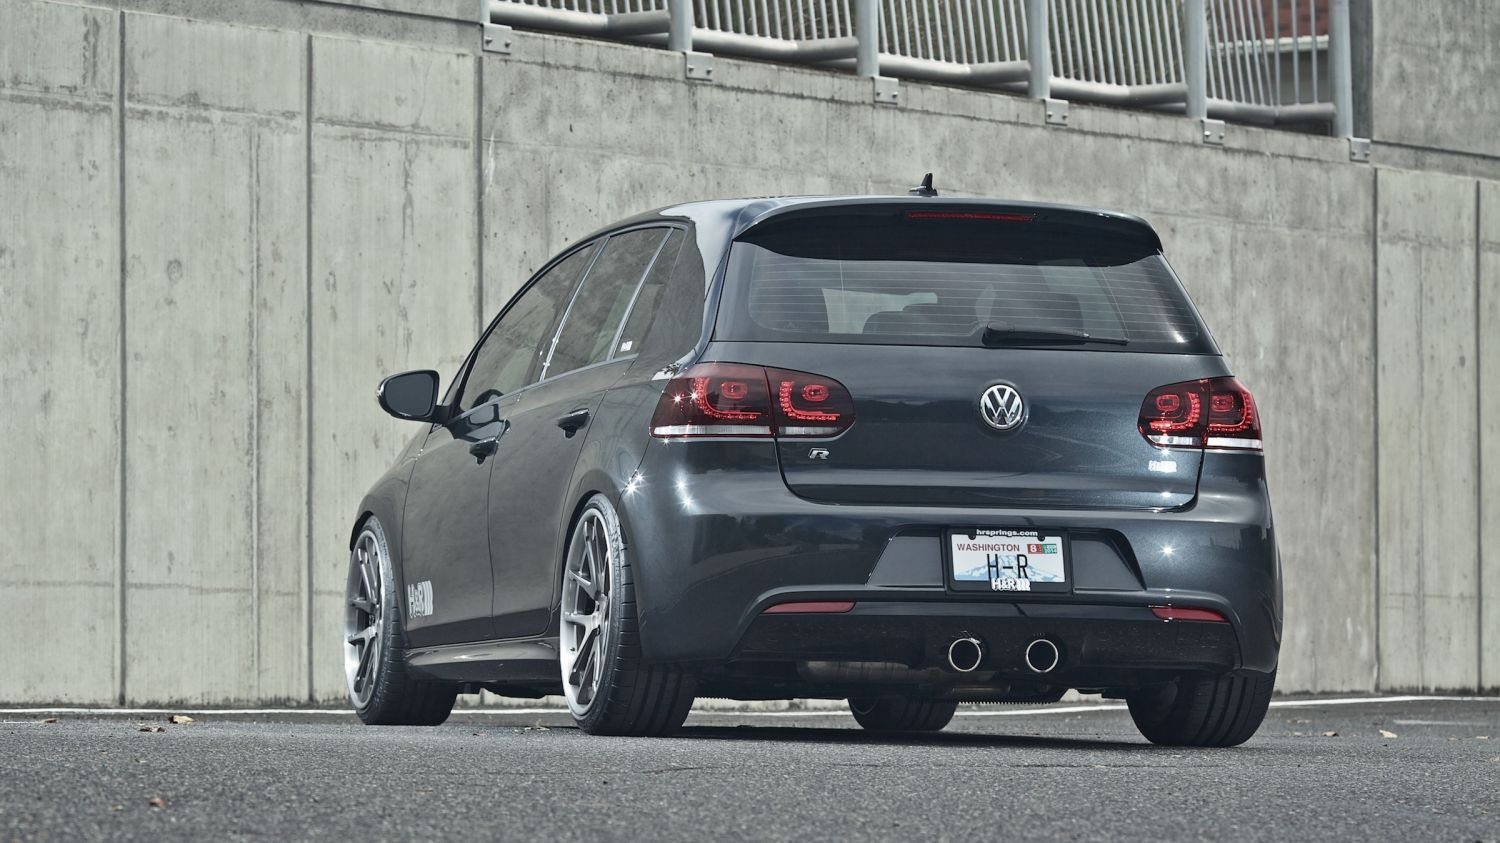 Vw Tdi Performance >> H&R 2013 Volkswagen Golf R | H&R Special Springs, LP.